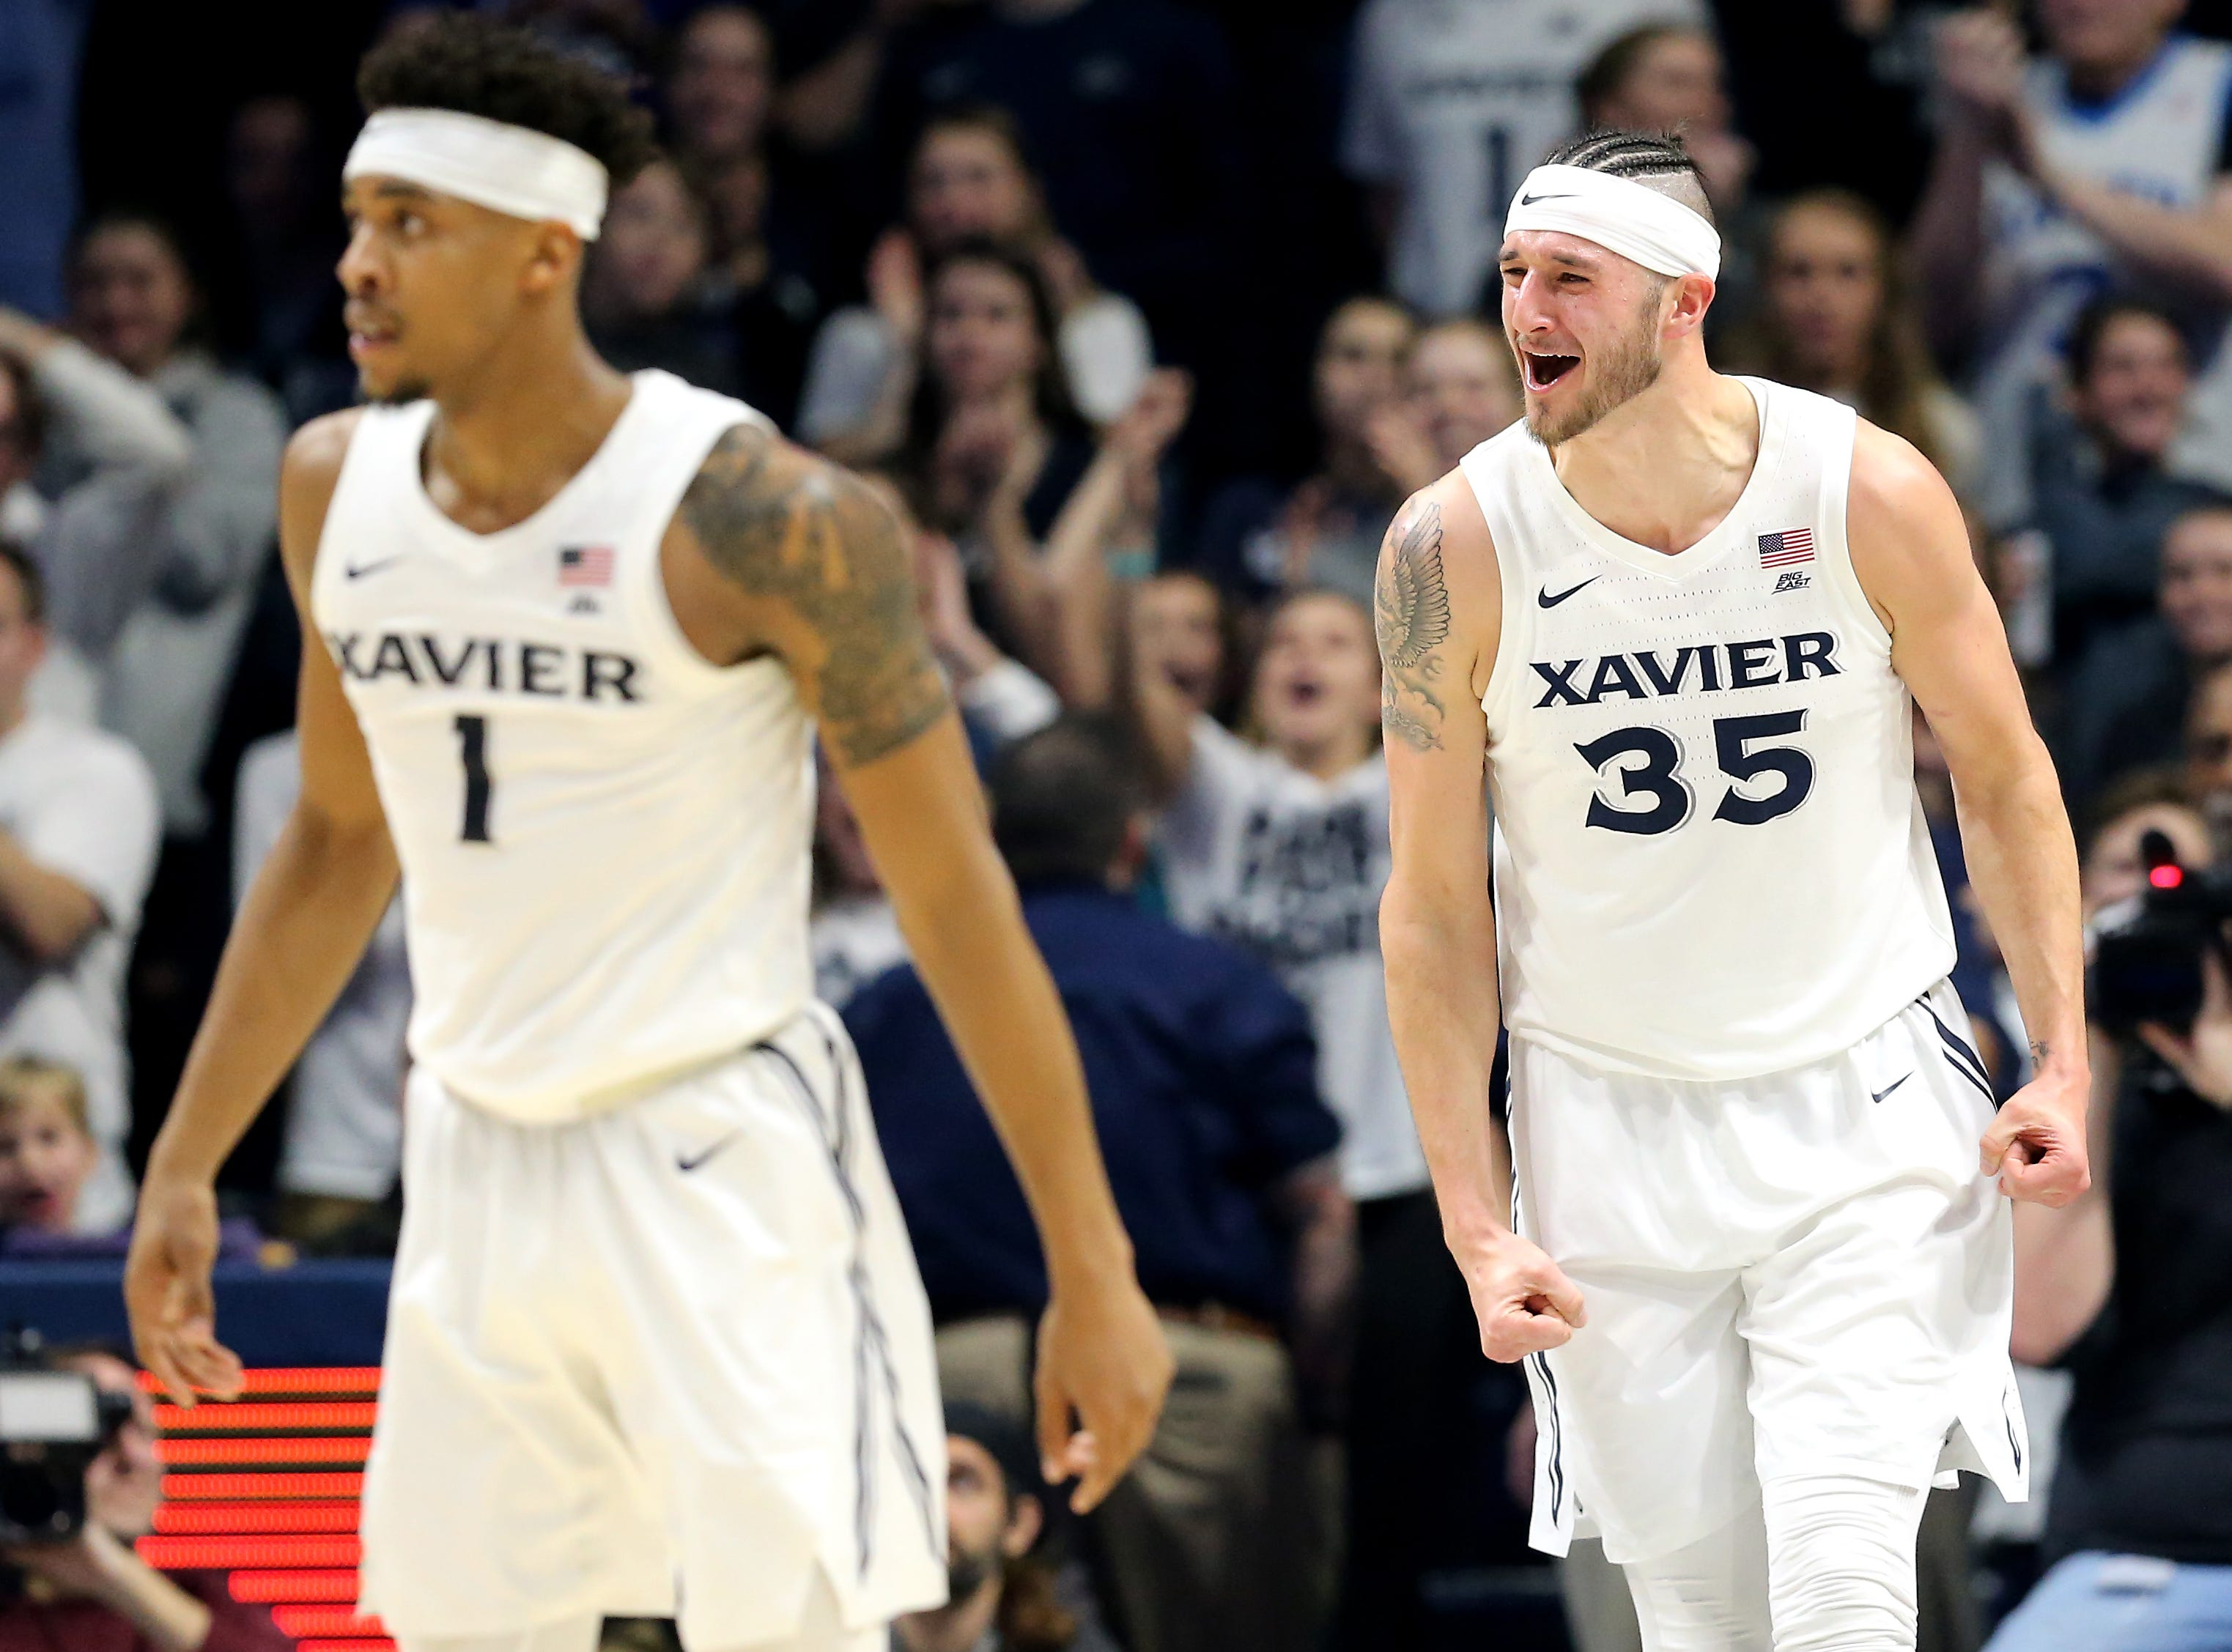 Xavier Musketeers forward Zach Hankins (35) reacts as the team pulls away in the second half of an NCAA basketball game, Wednesday, Jan. 9, 2019, at the Cintas Center in Cincinnati. Xavier Musketeers won 81-75 against the Georgetown Hoyas.